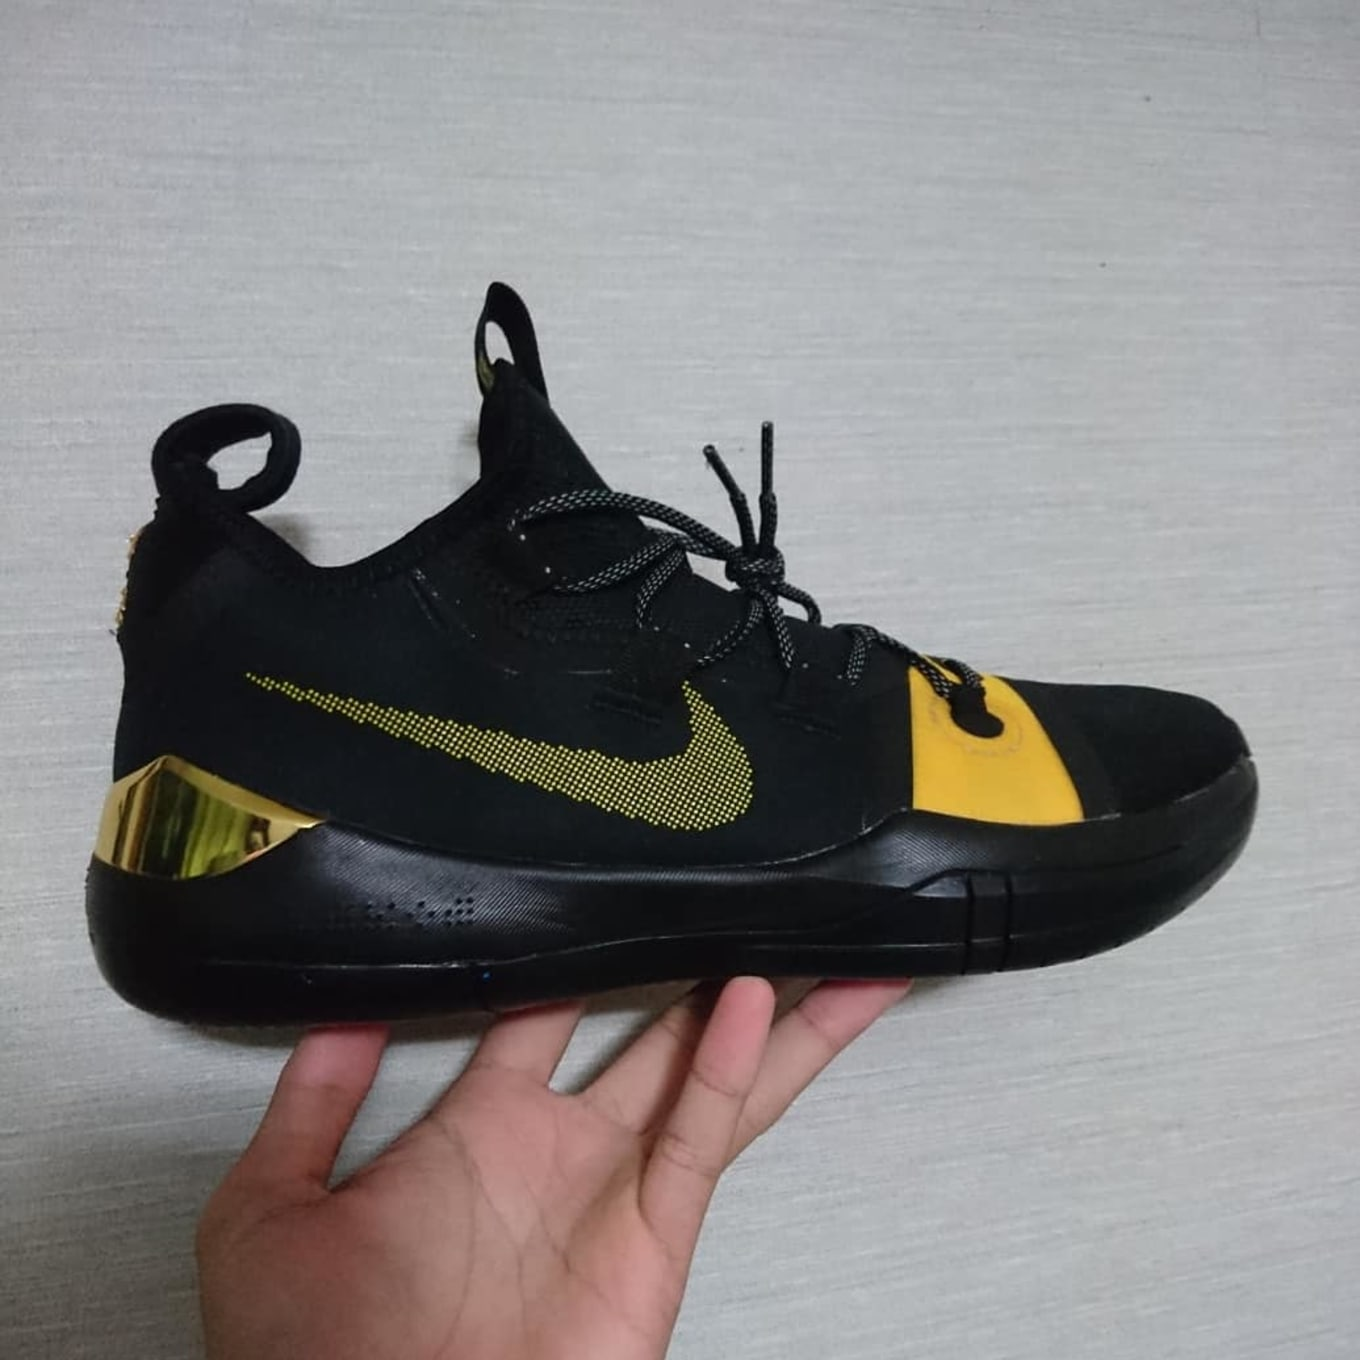 huge discount 11876 2926e NIKEiD Nike By You Kobe A.D. Exodus Designs | Sole Collector